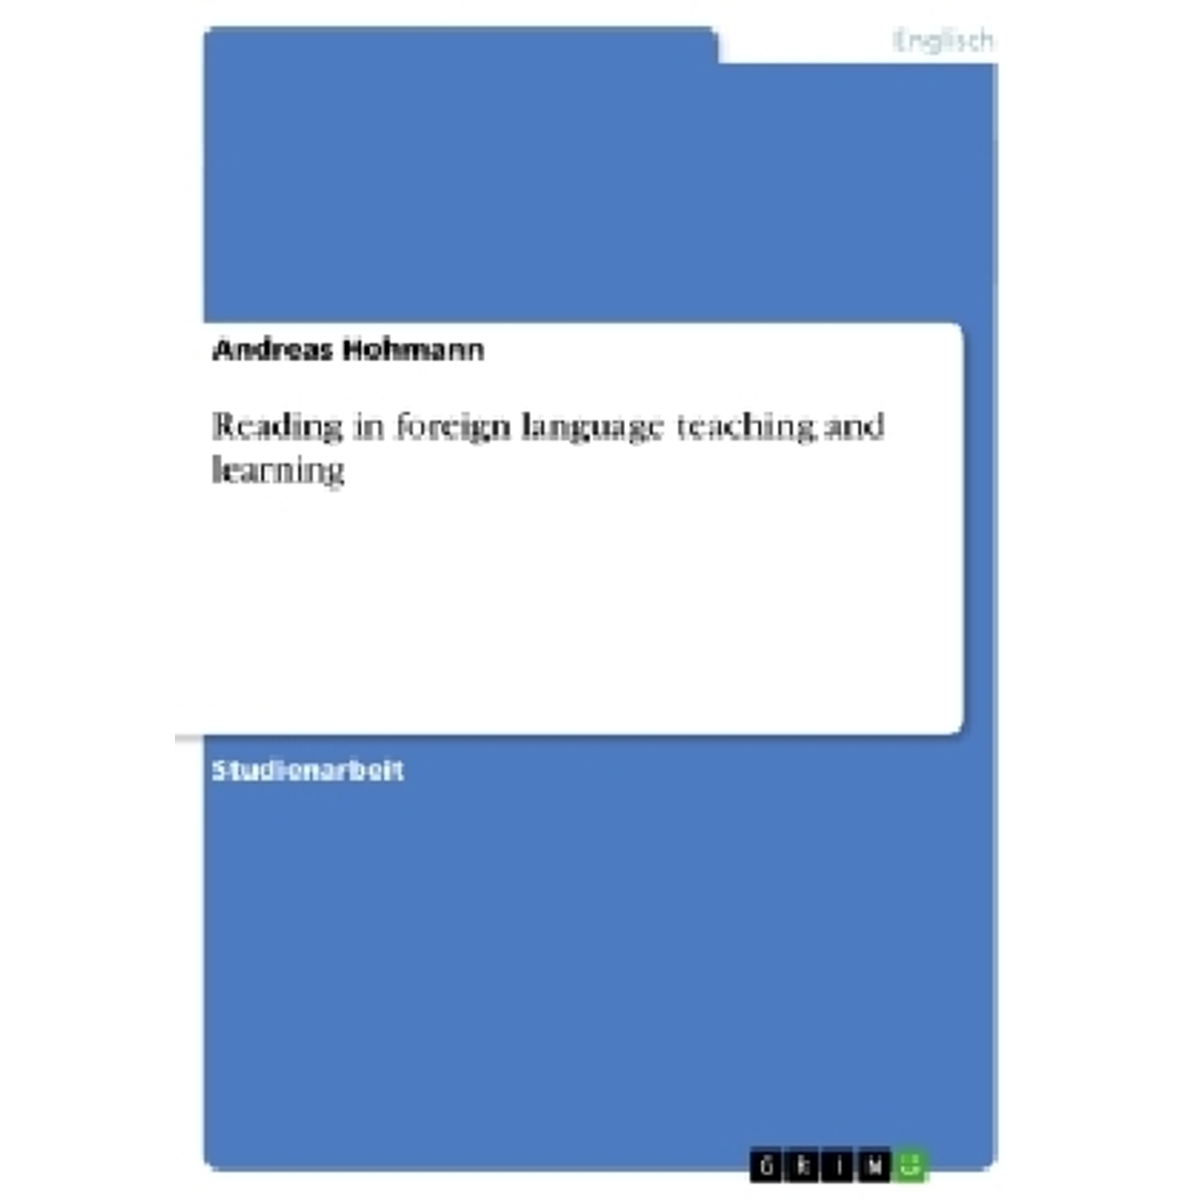 Reading in foreign language teaching and learning